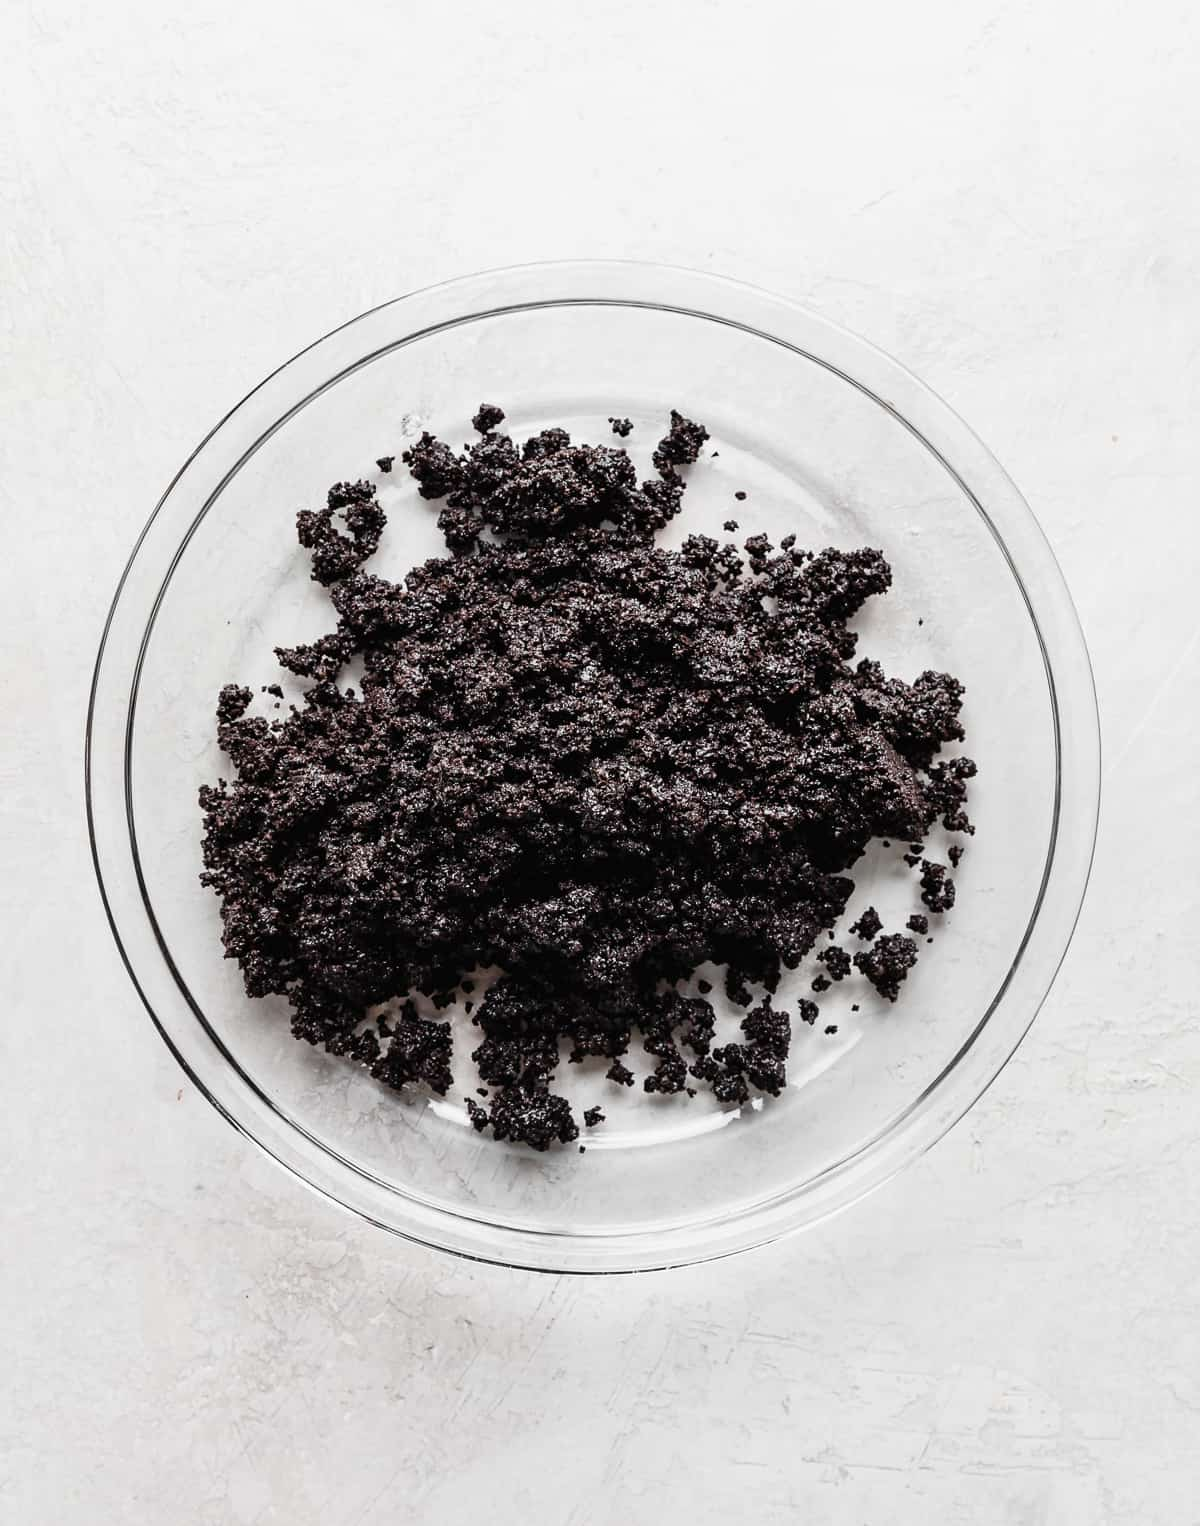 A glass pie dish with Oreo crumbs in it for making Oreo Pie Crust.